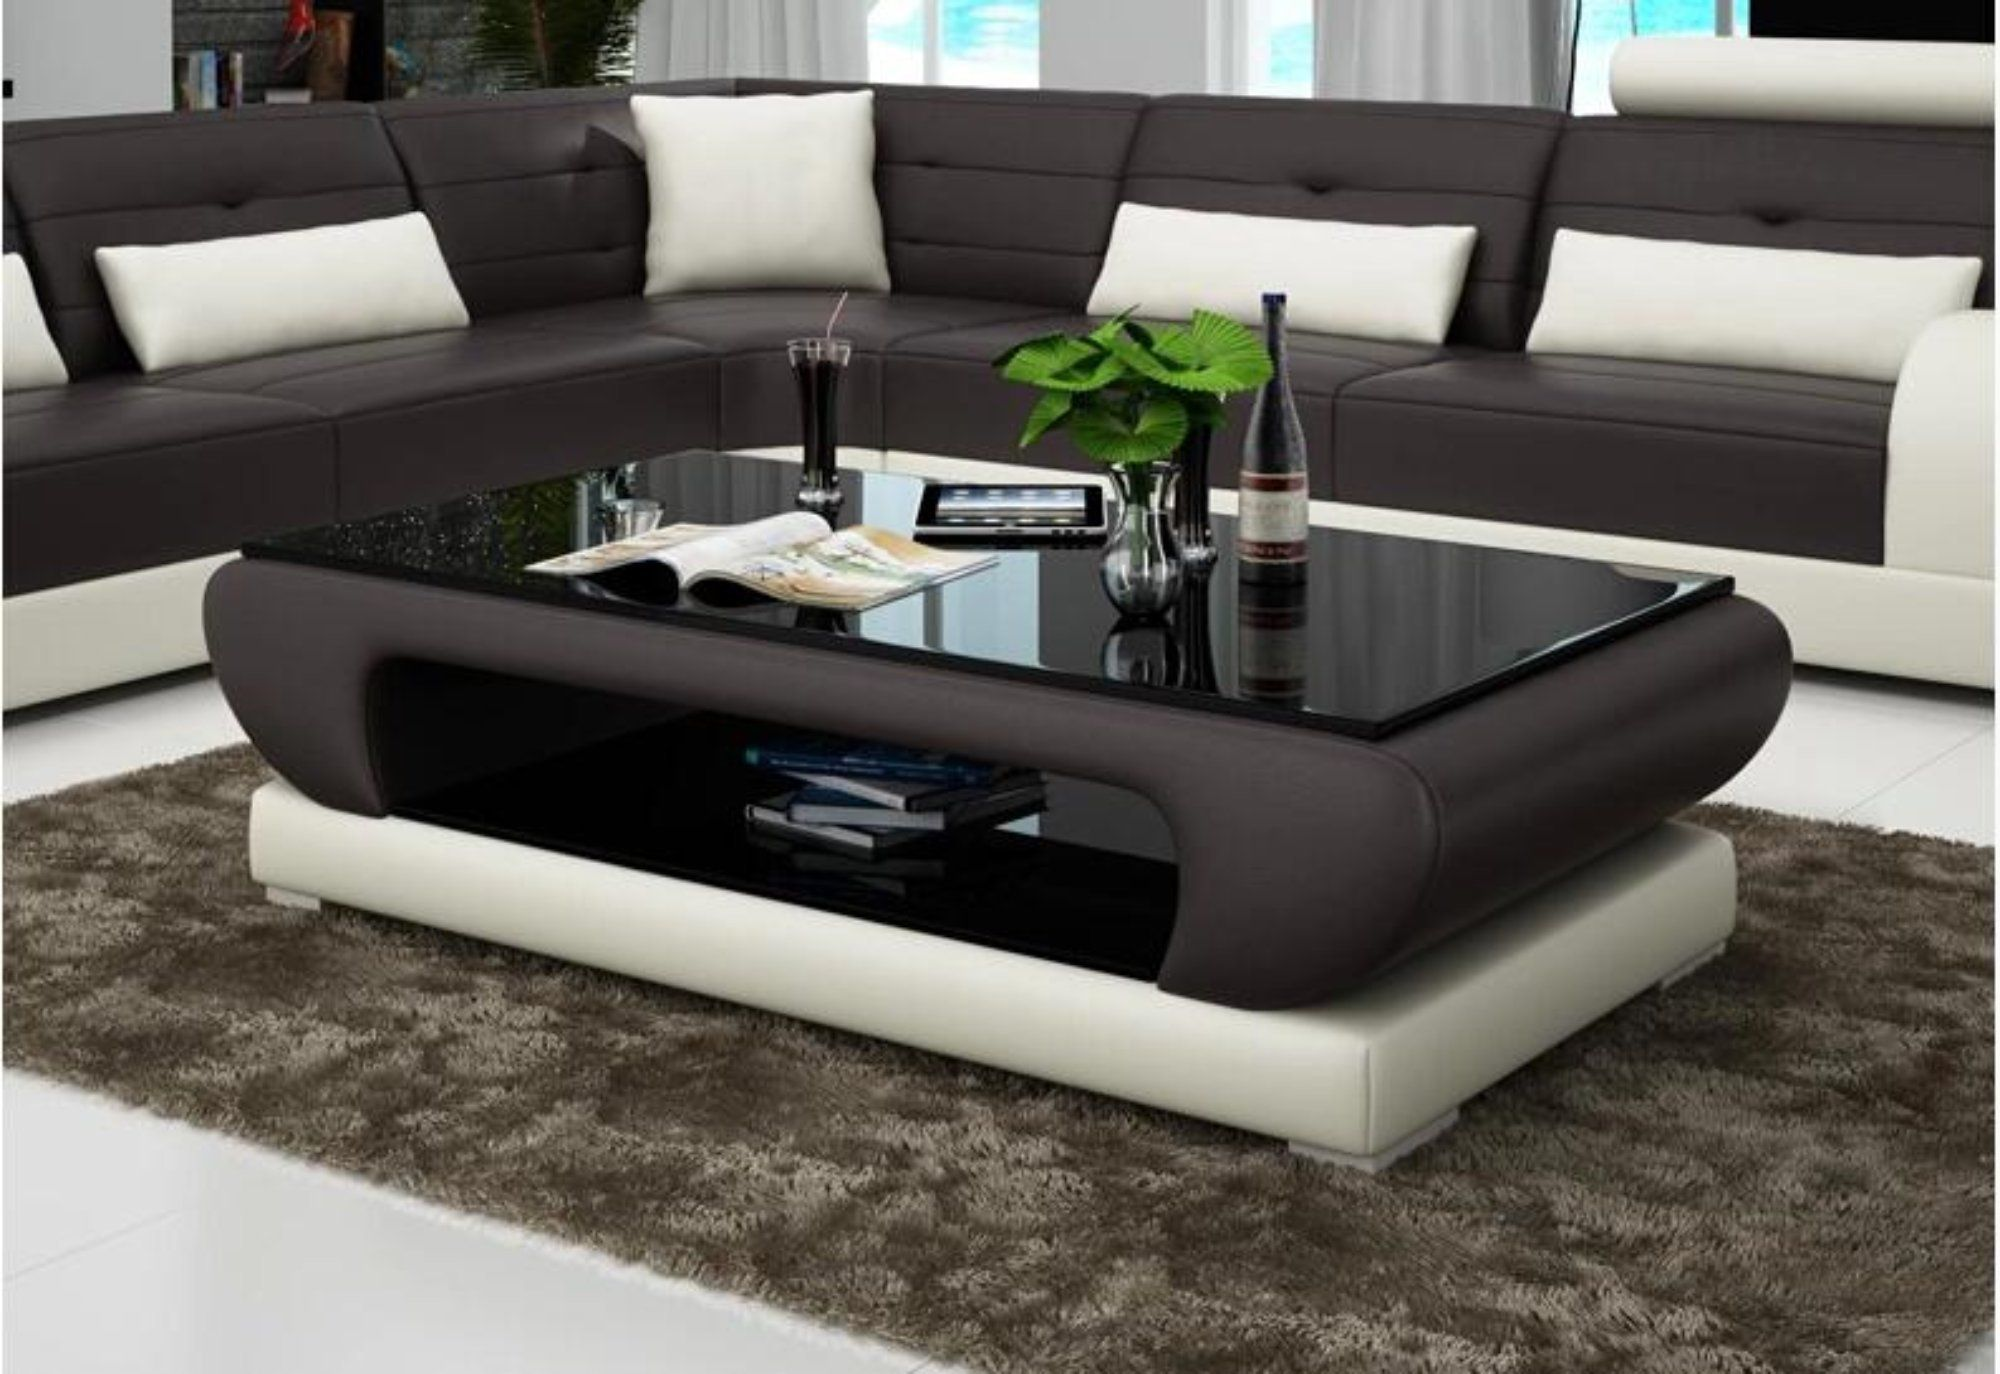 Contemporary Black And White Leather Coffee Table With Black Glass Living Room Sofa Design Sofa Table Design Leather Sofa Living Room [ 1374 x 2000 Pixel ]